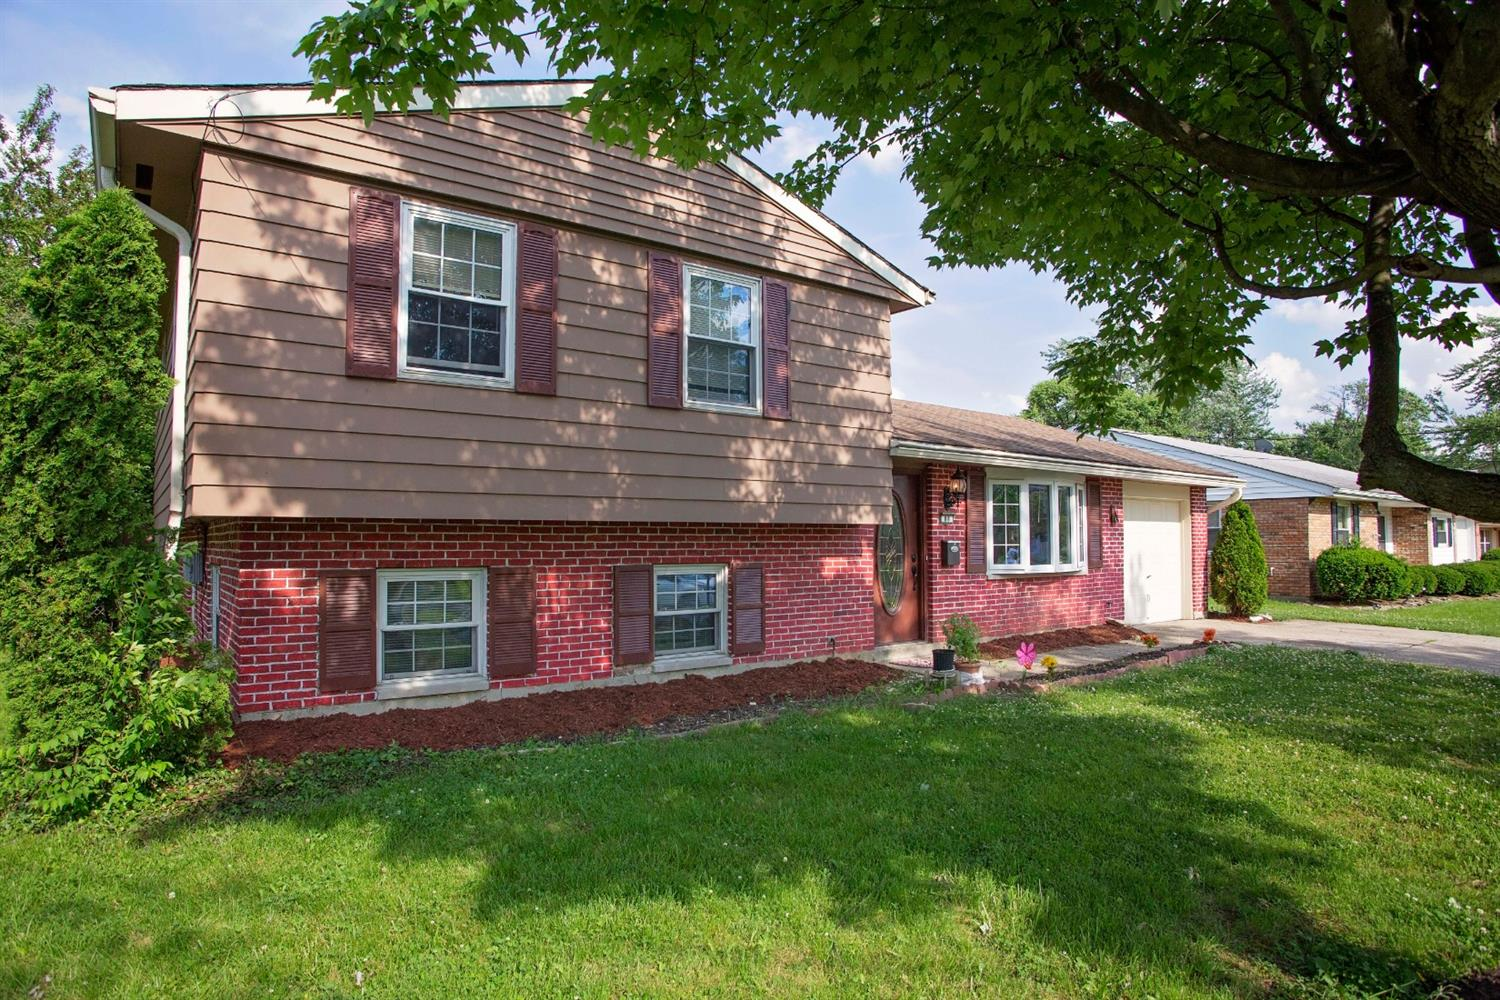 Photo 2 for 88 Silverwood Cir Springdale, OH 45246